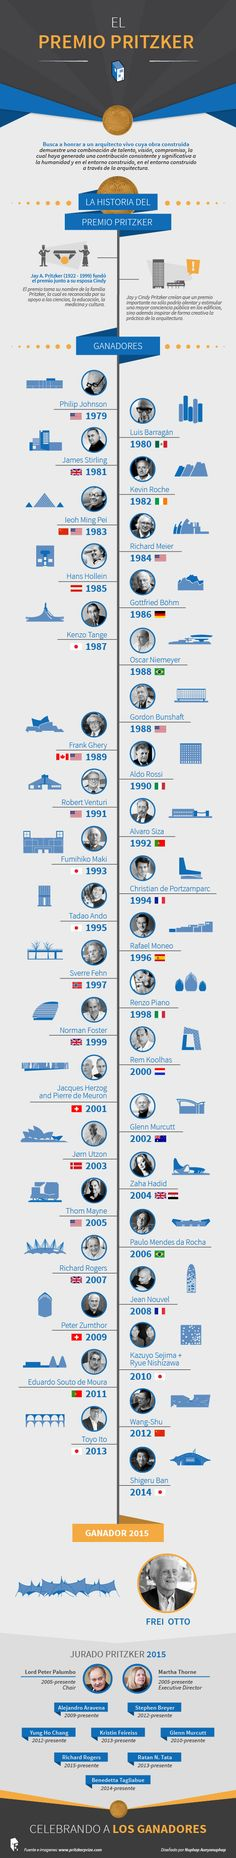 _-Archdaily-_-ADCL-Infographic-03---Pritzker-Prize-Final-Artwork-2015-(CS4).jpg (528×4157)